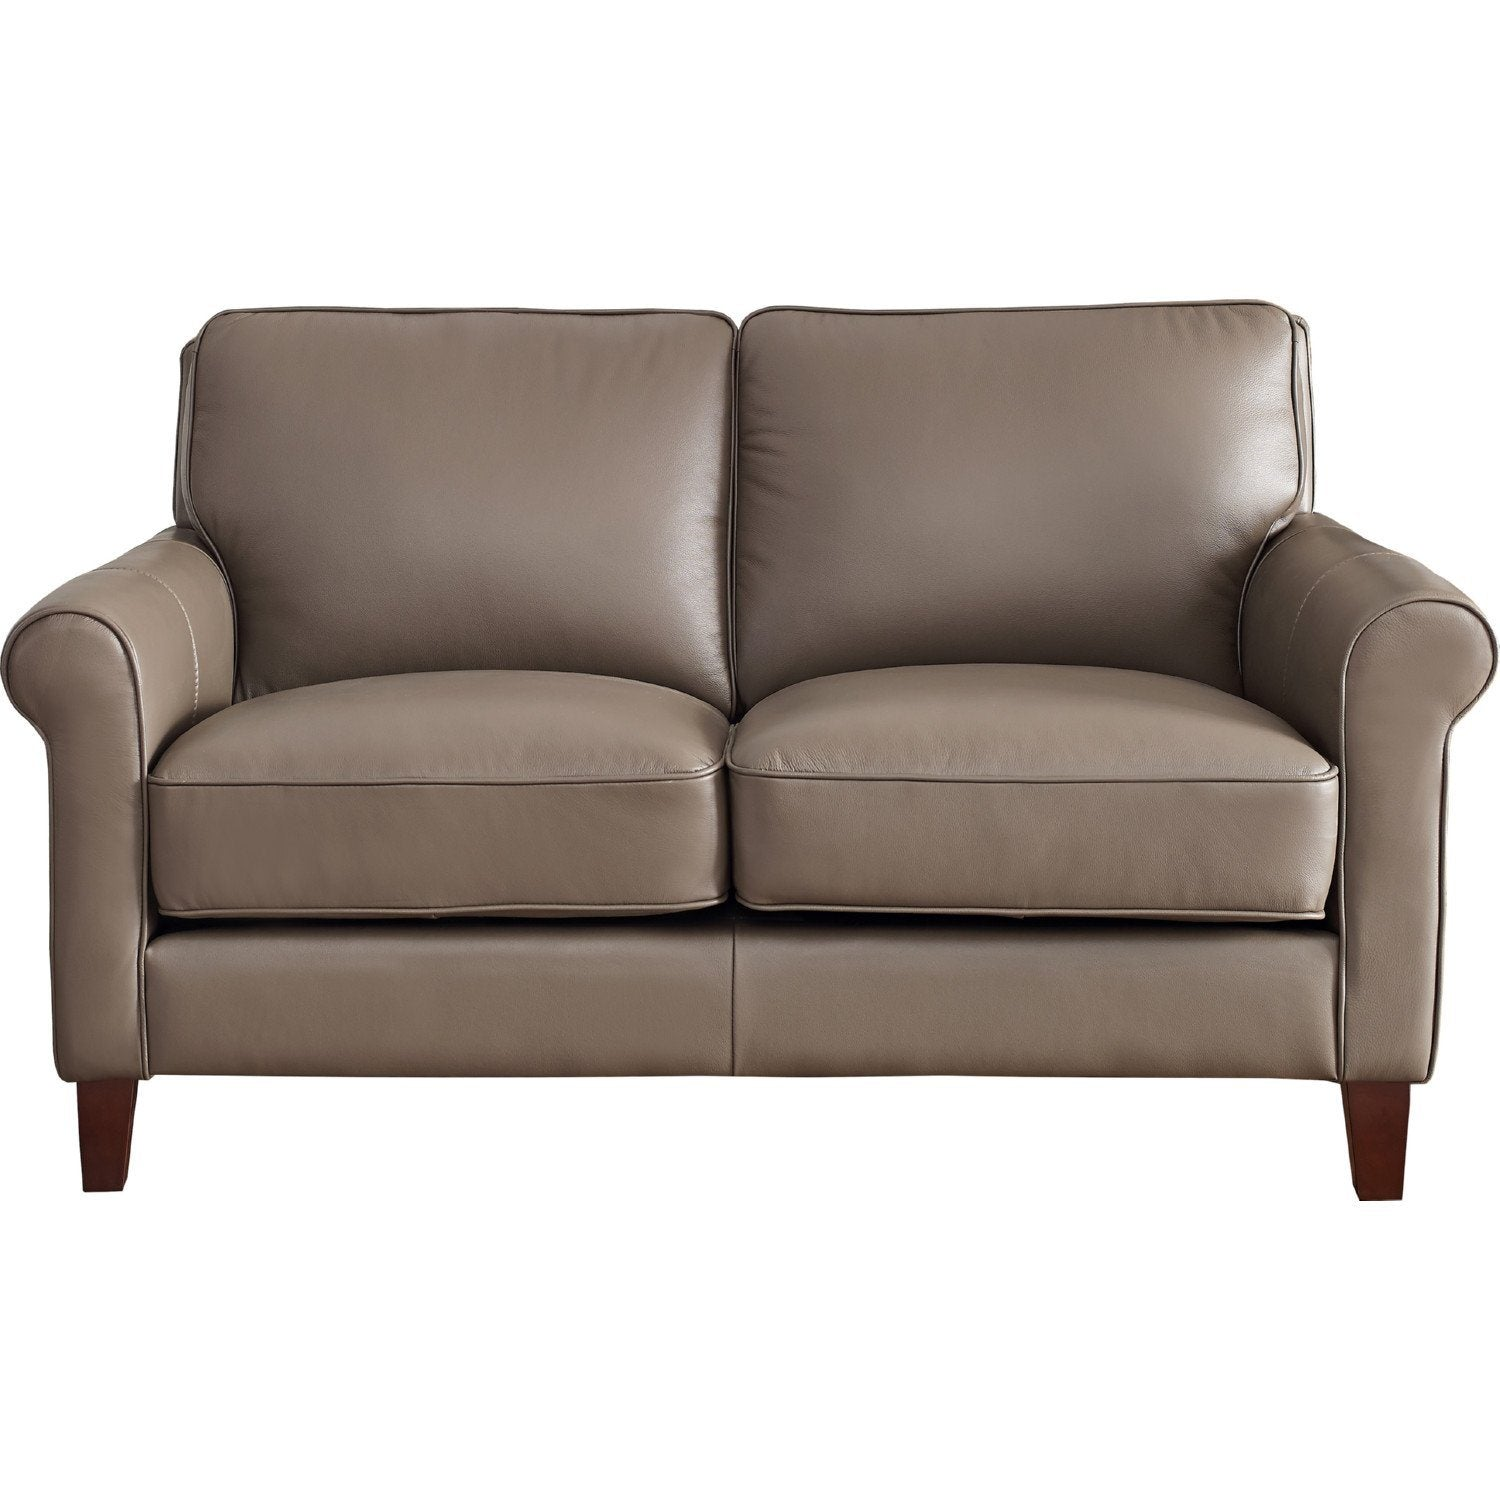 New London Top Grain Custom Leather Loveseat, Made in Canada 🇨🇦 | Calgary's Furniture Store